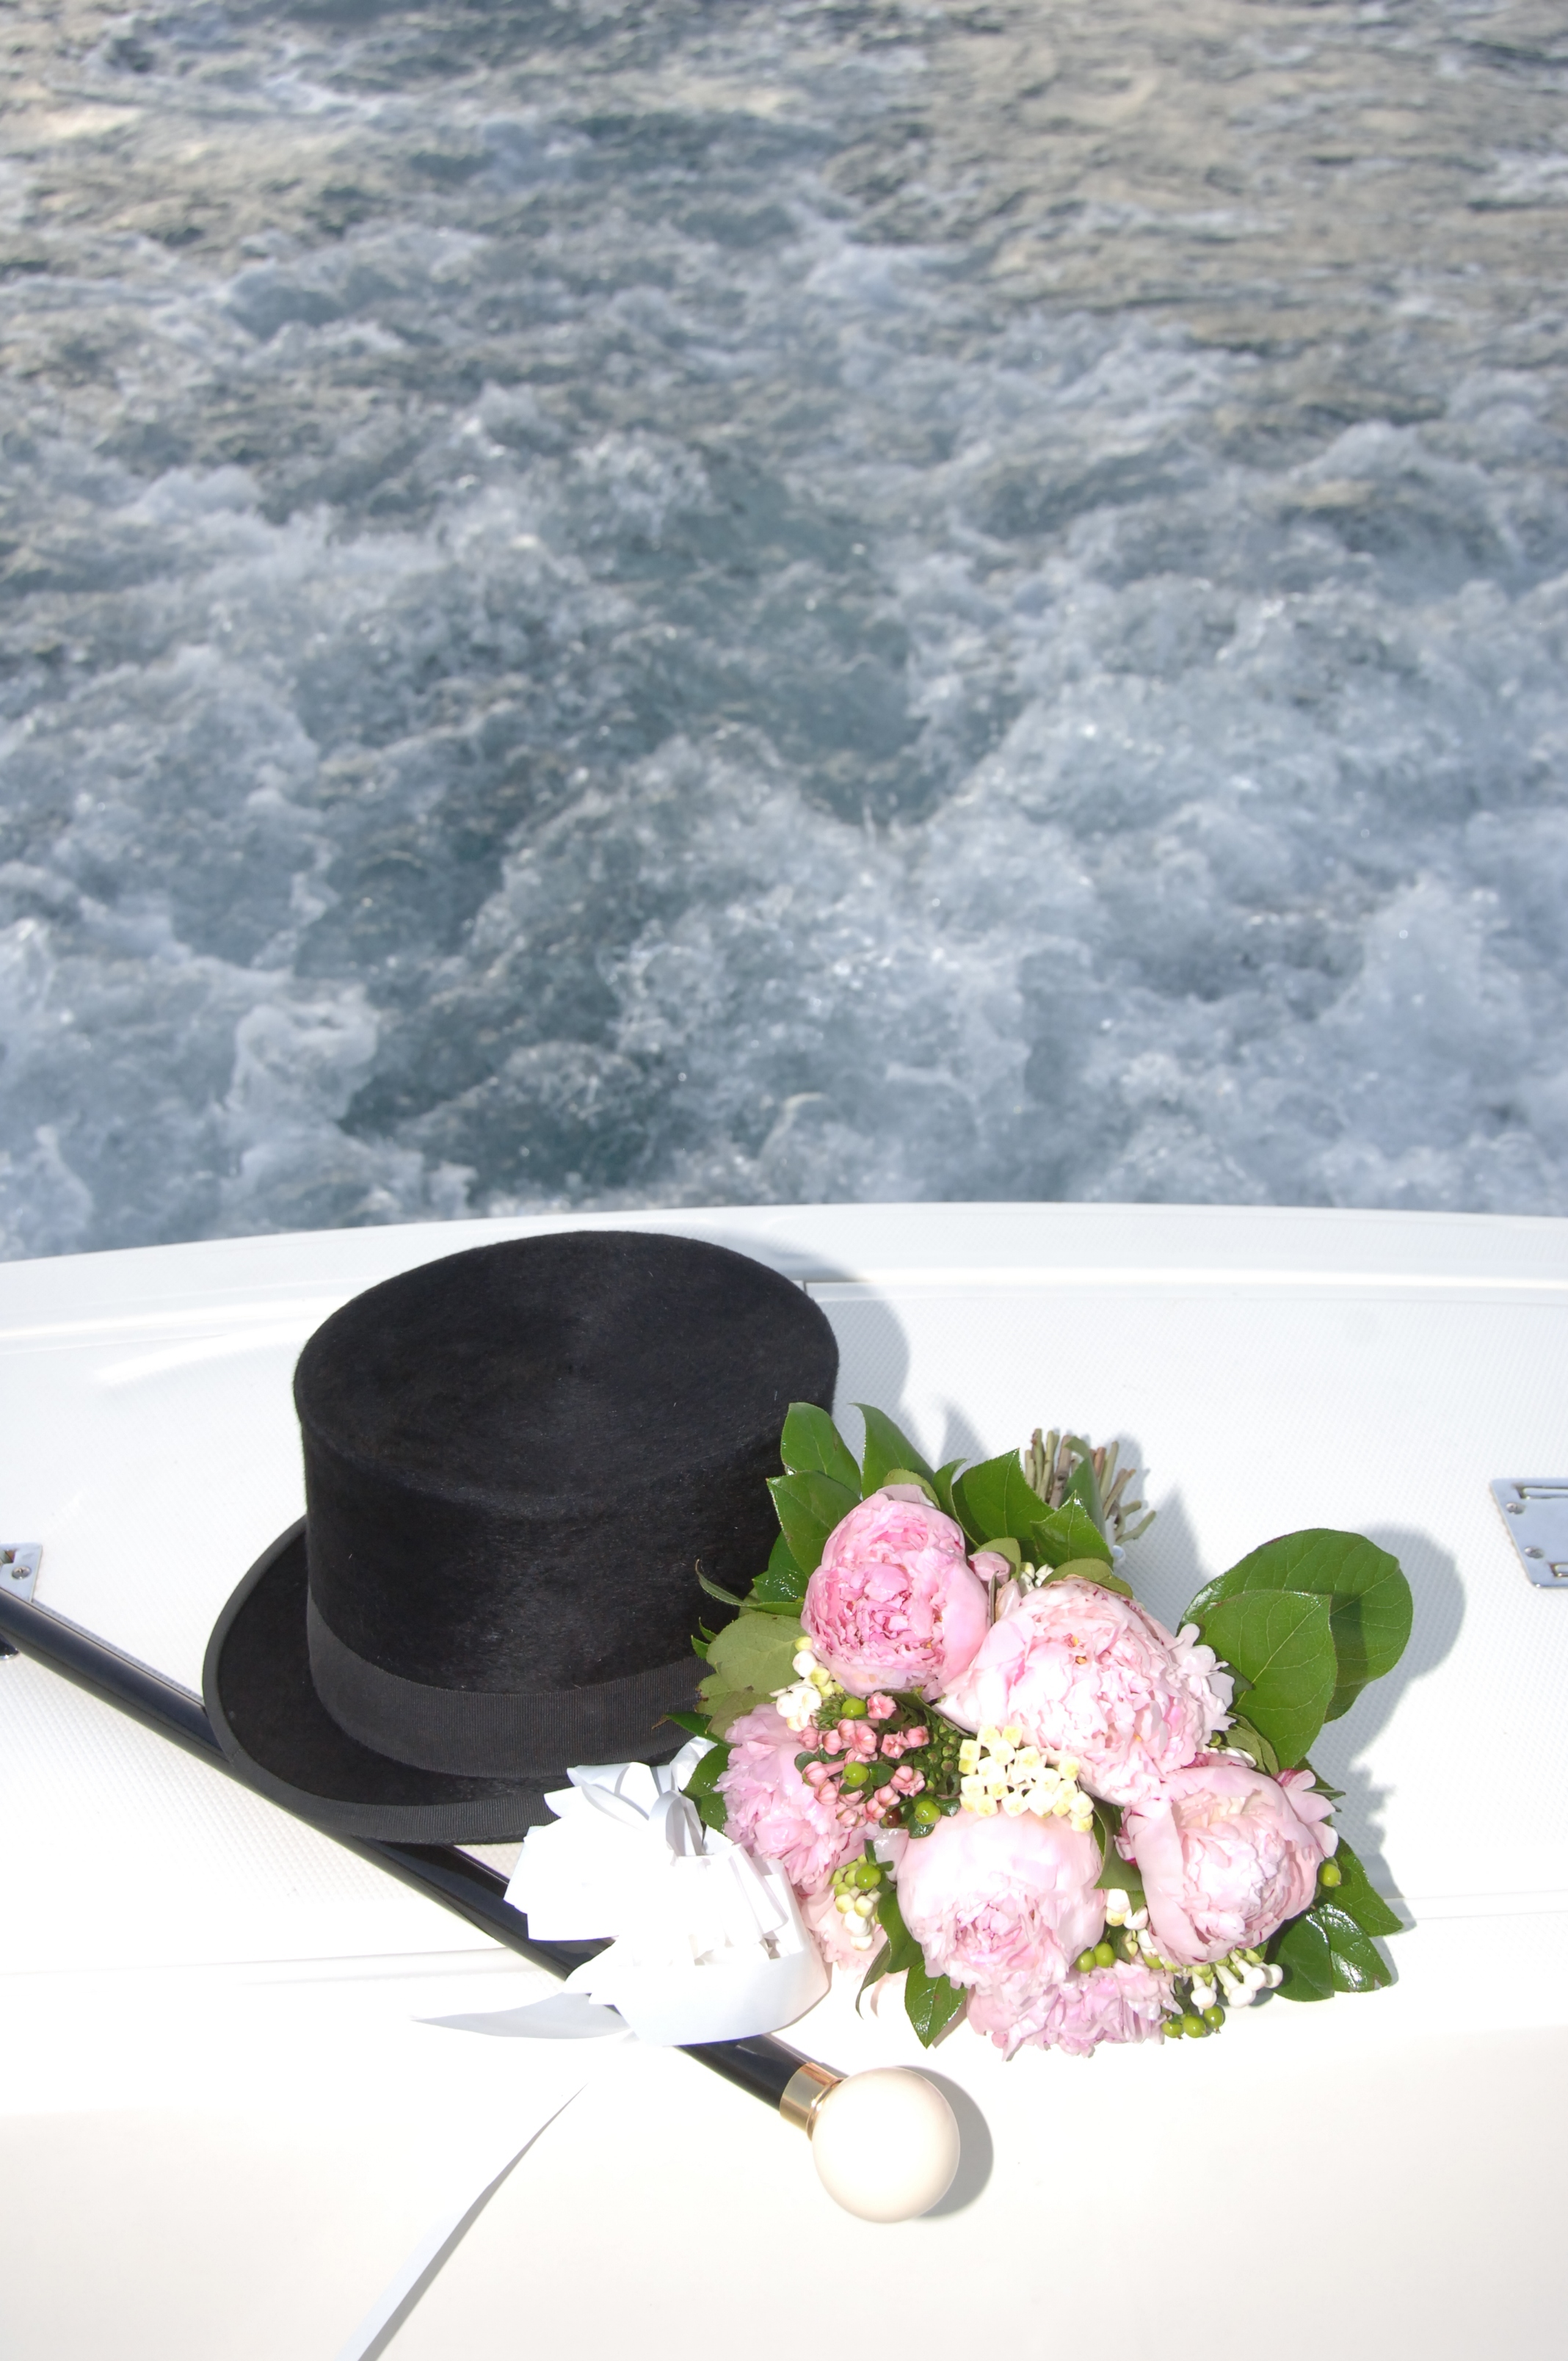 http://www.weddingamalfi.com/wp-content/uploads/Enza-and-Mario-grooms-hat-and-stick-with-brides-bouquet.jpg